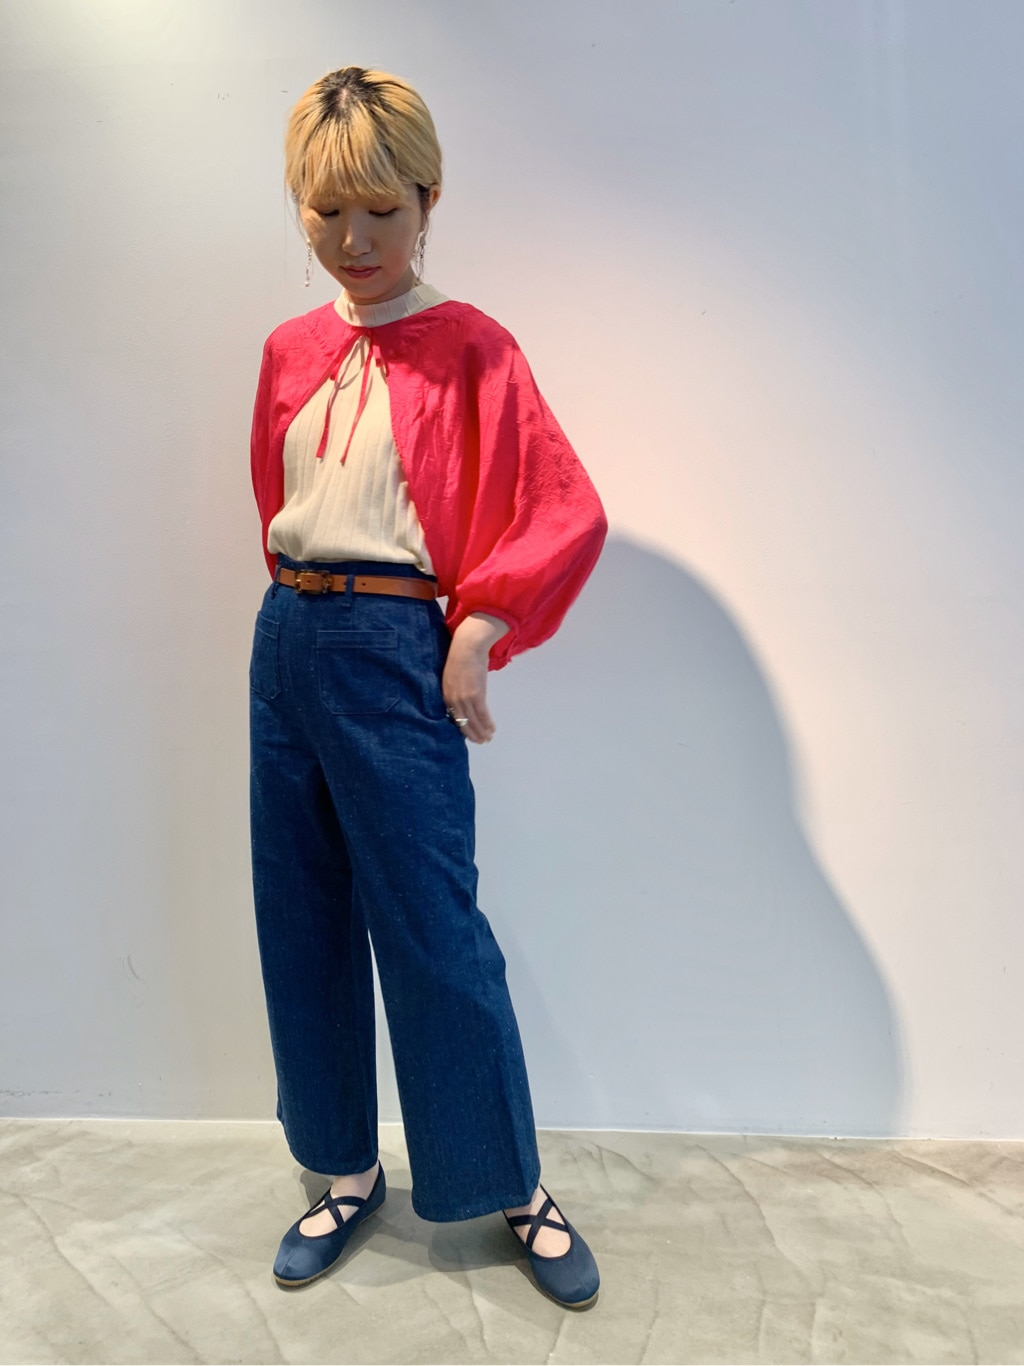 Dot and Stripes CHILD WOMAN ラフォーレ原宿 身長:160cm 2020.08.16